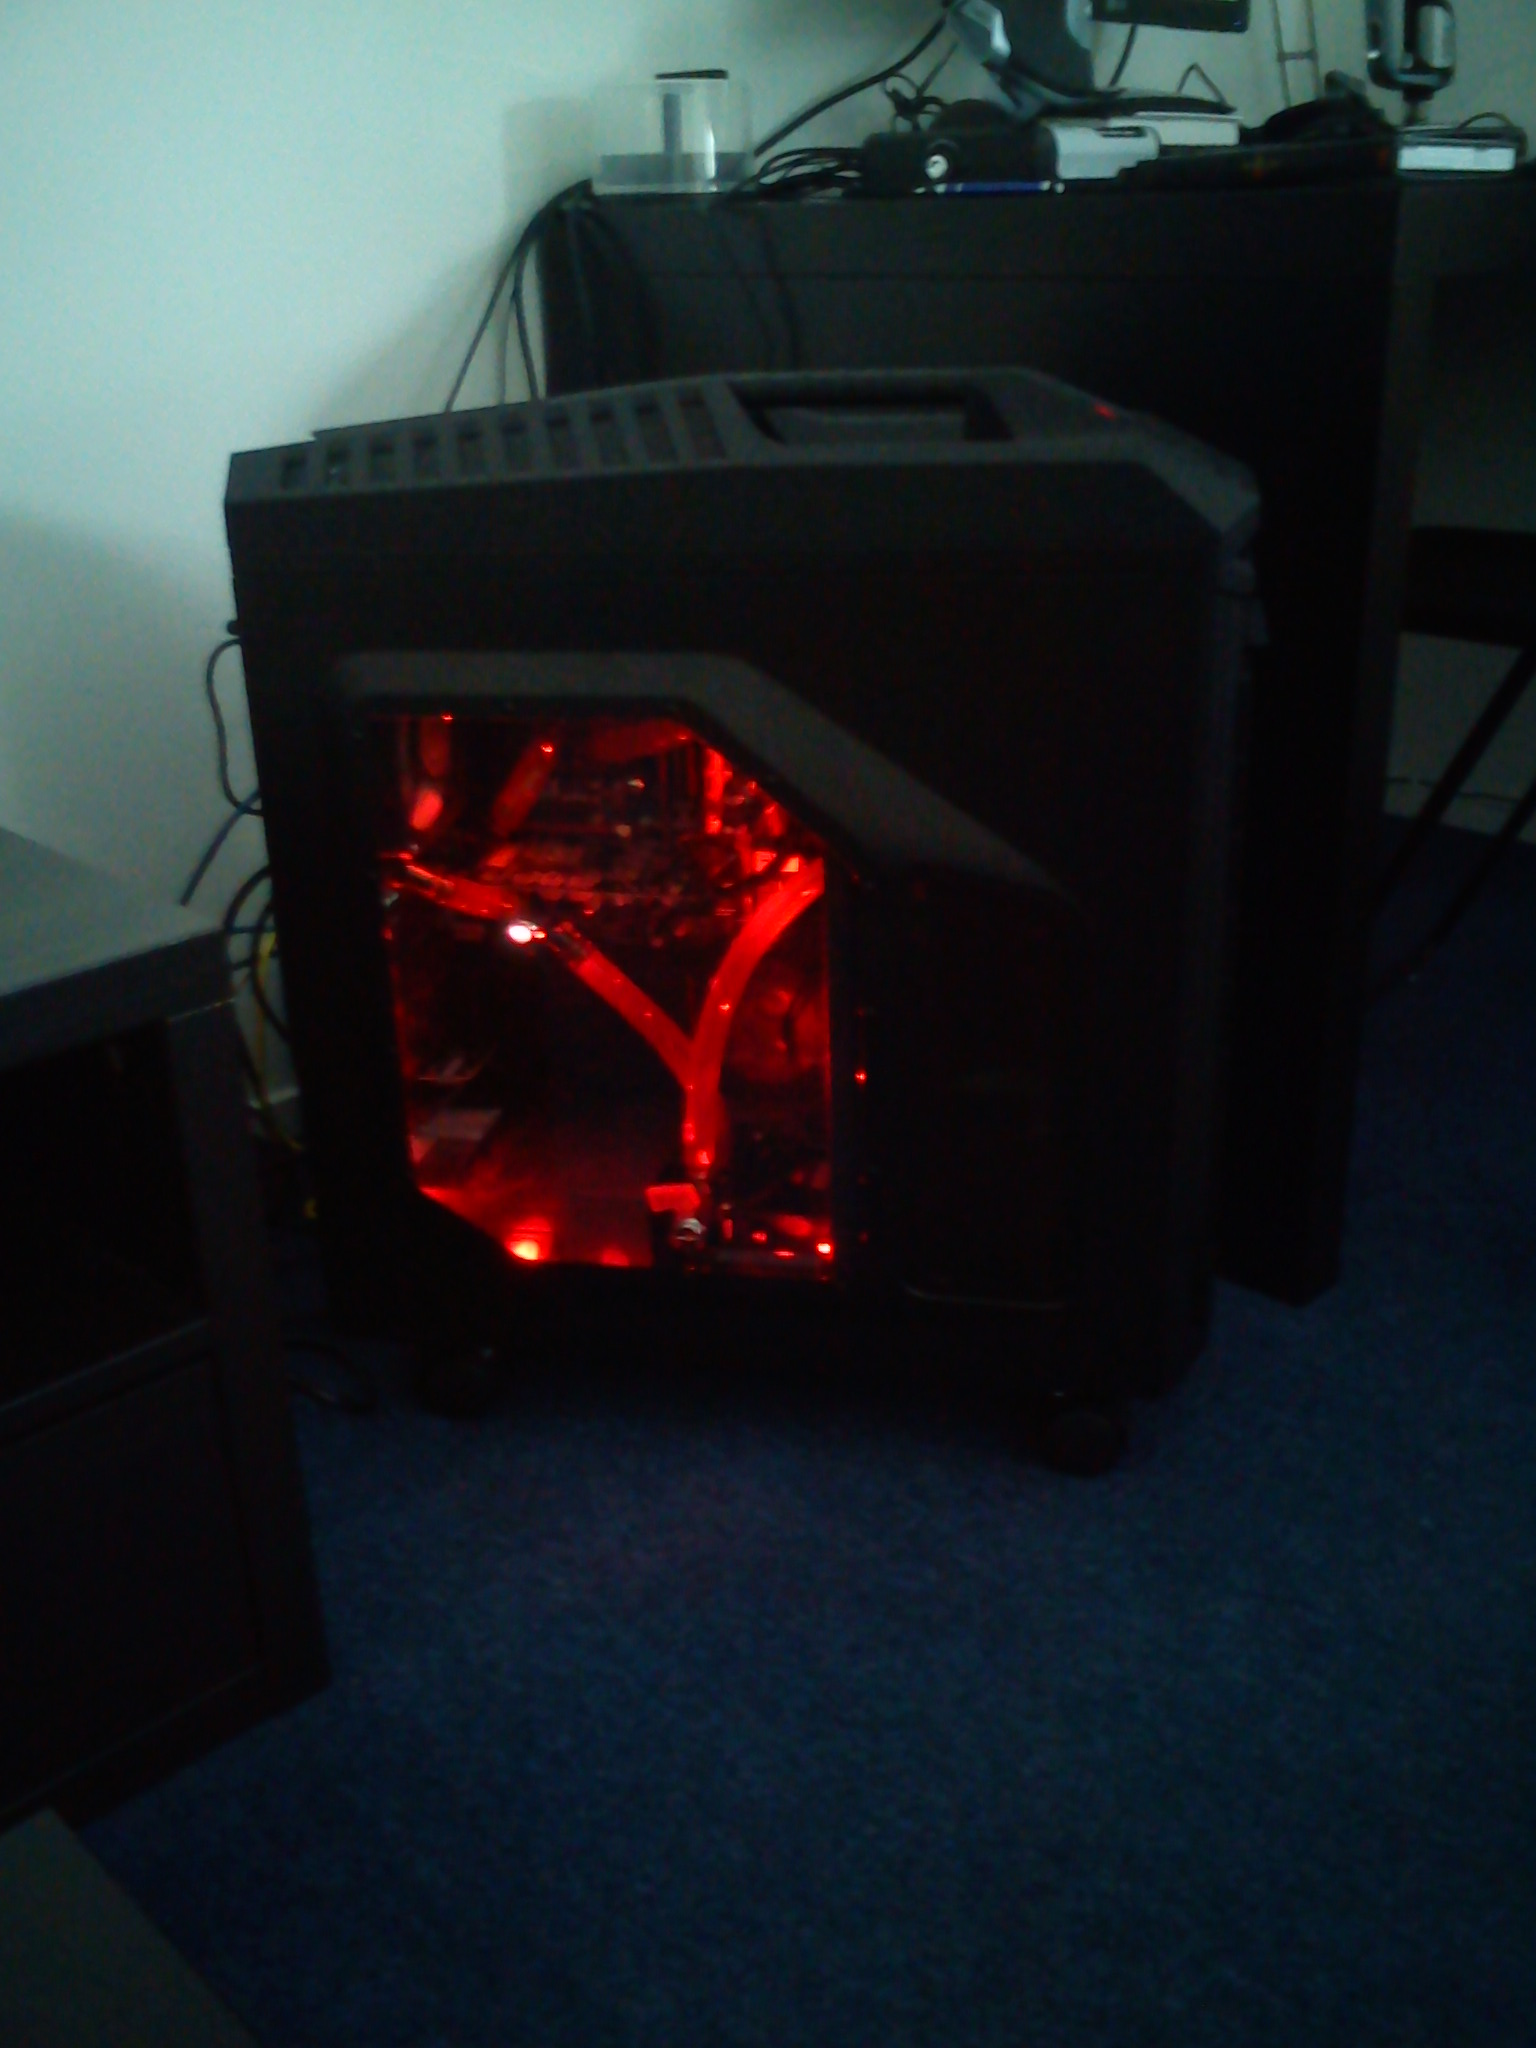 Added the NZXT Sleeved LED kit (red), setting 1